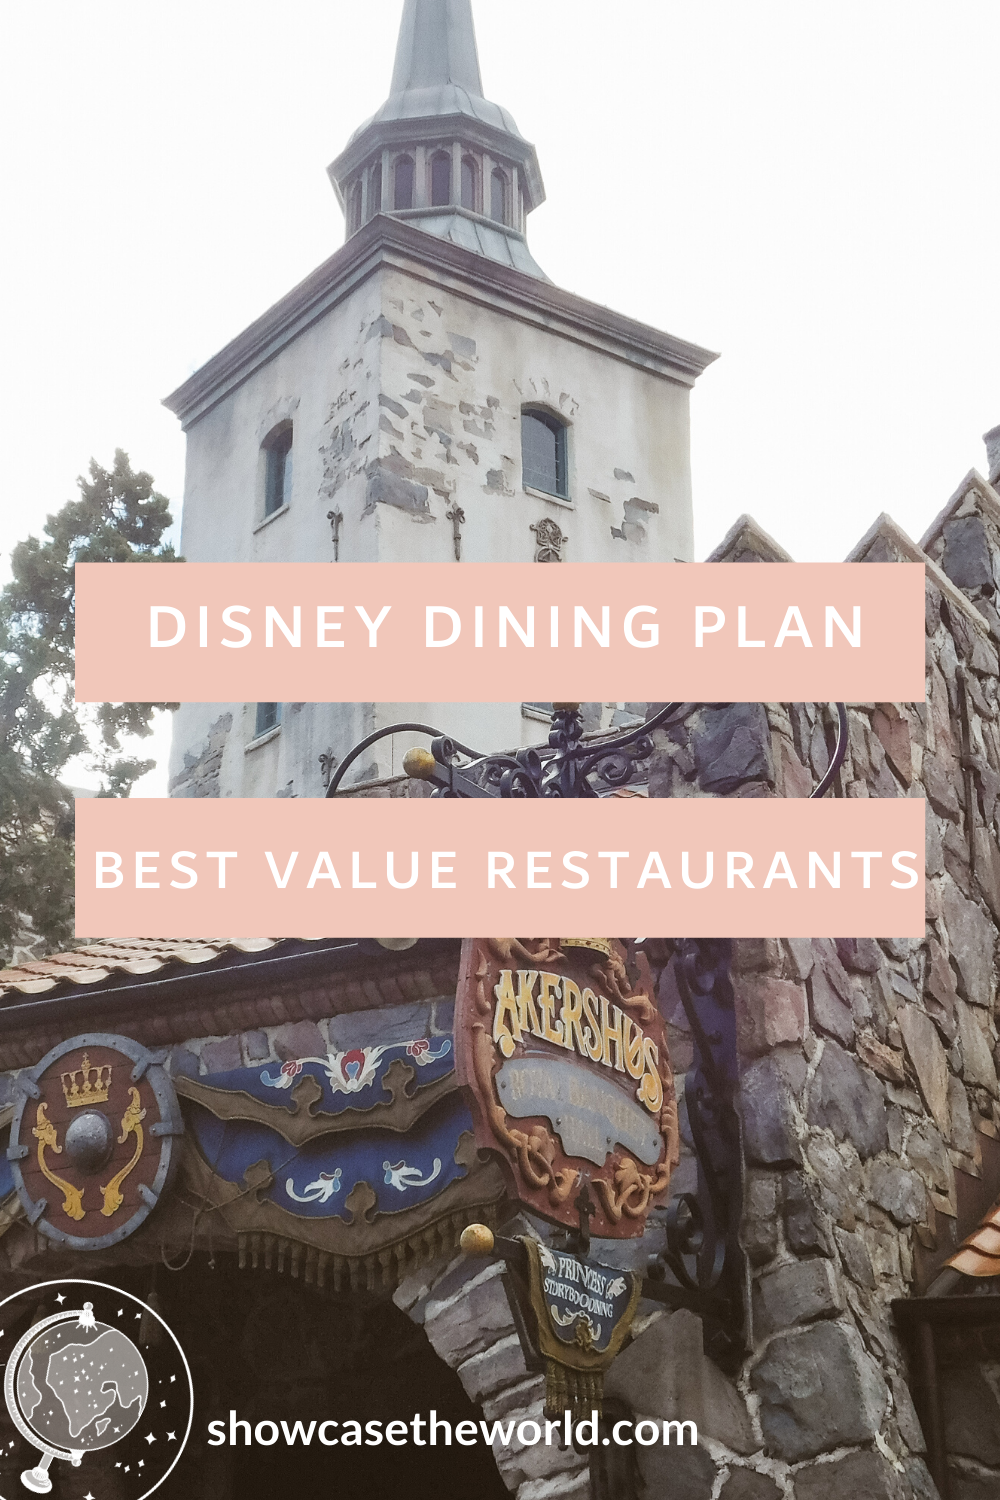 Table Service Restaurants That Are The Best Value On The Disney